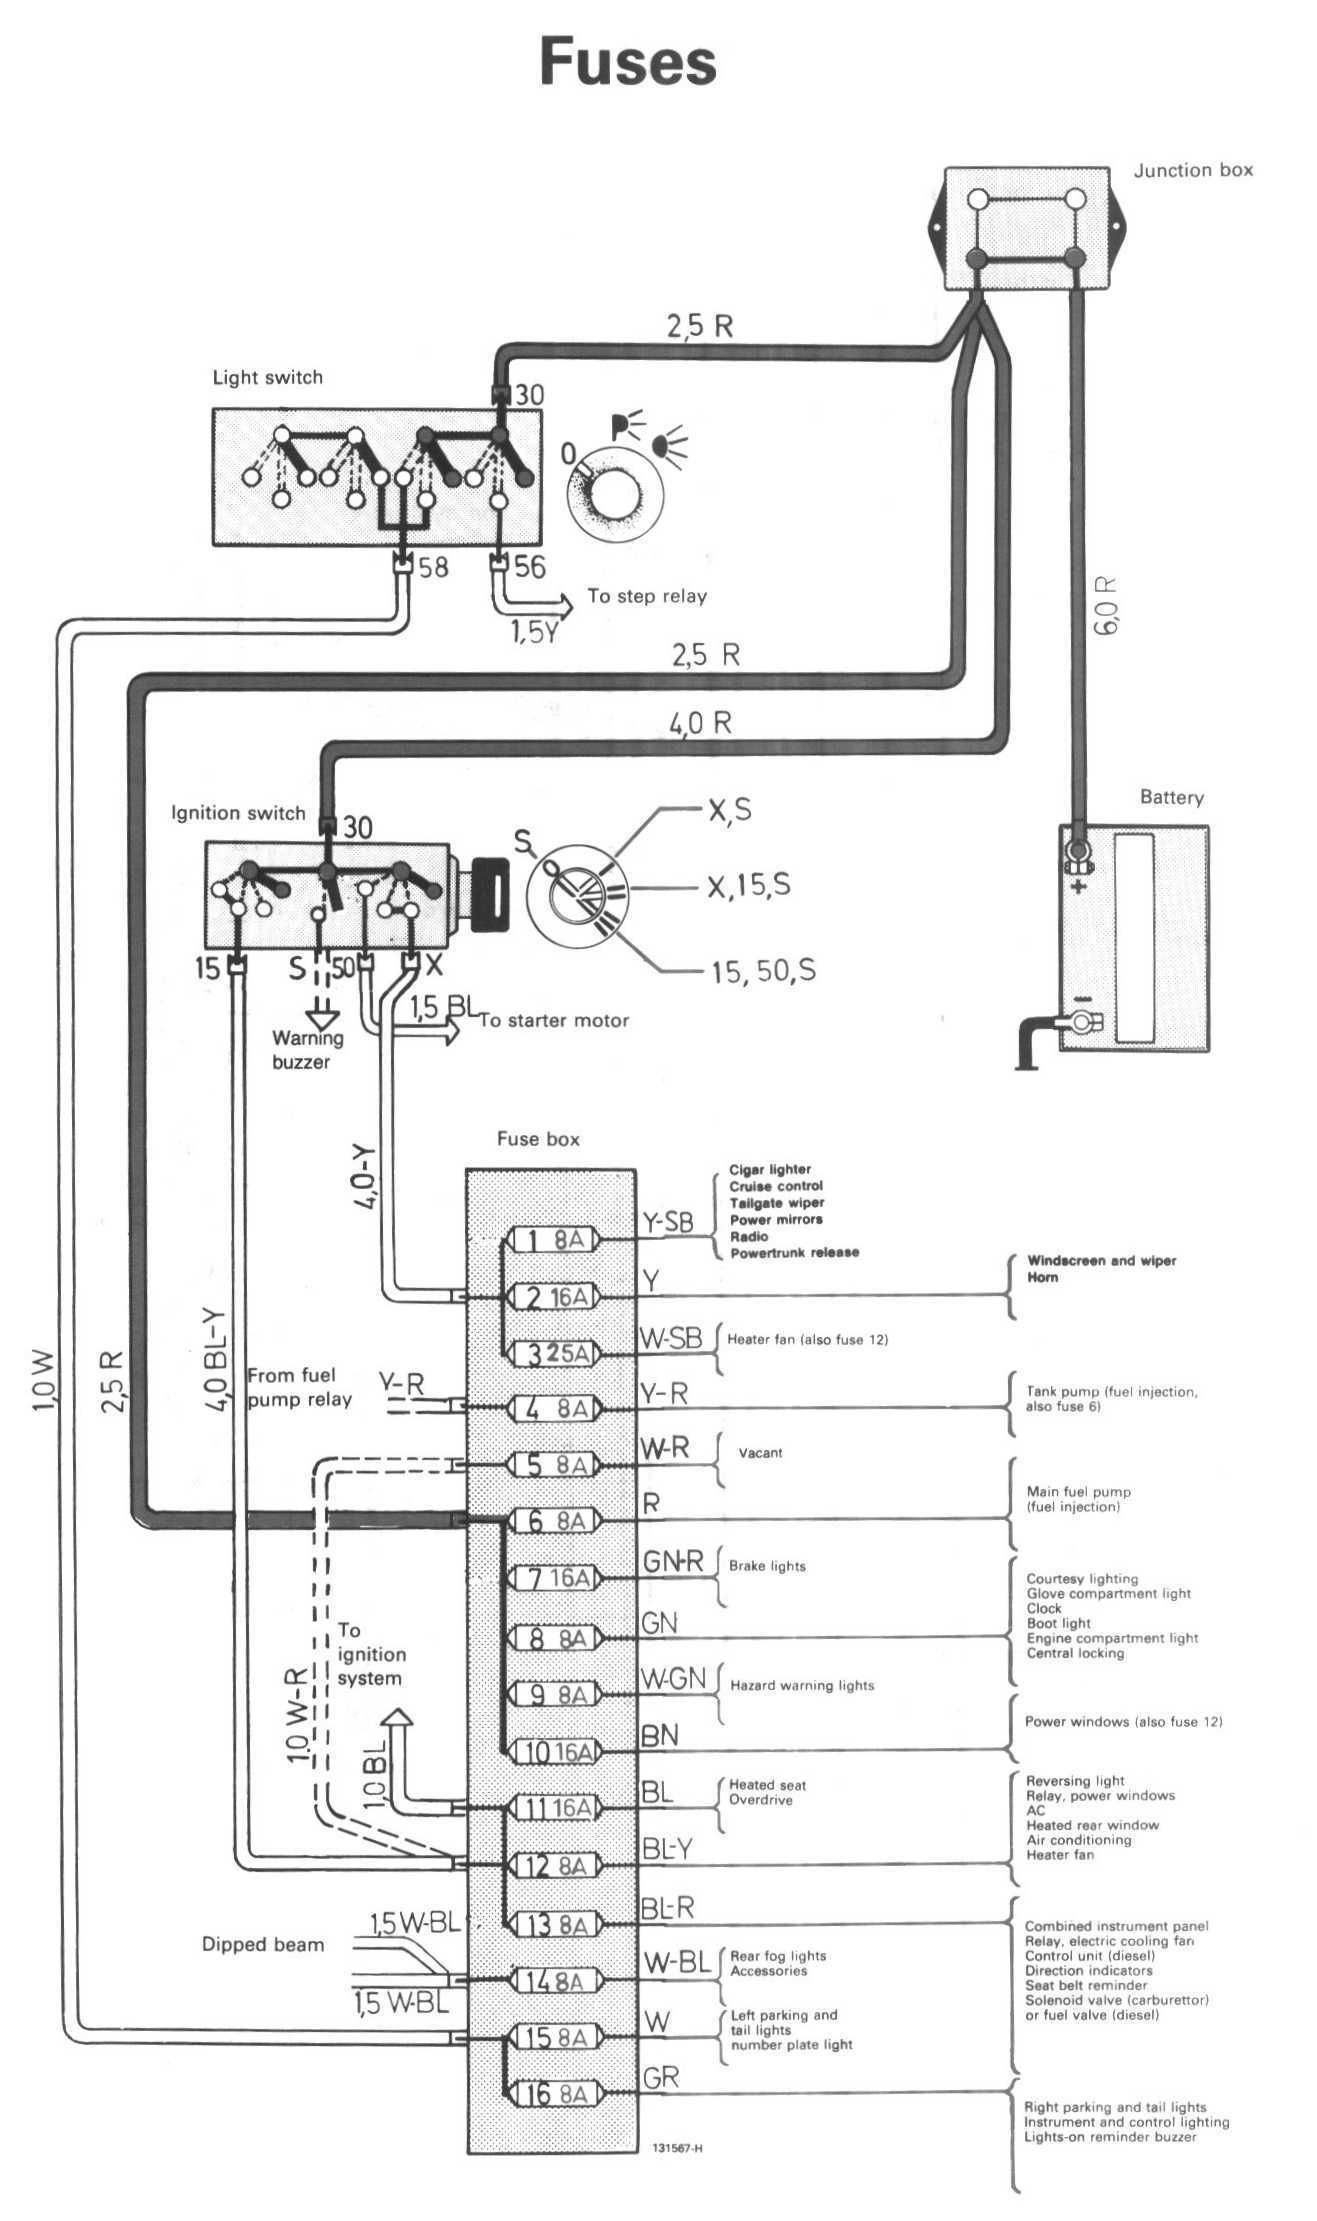 Wiring A Home Fuse Box